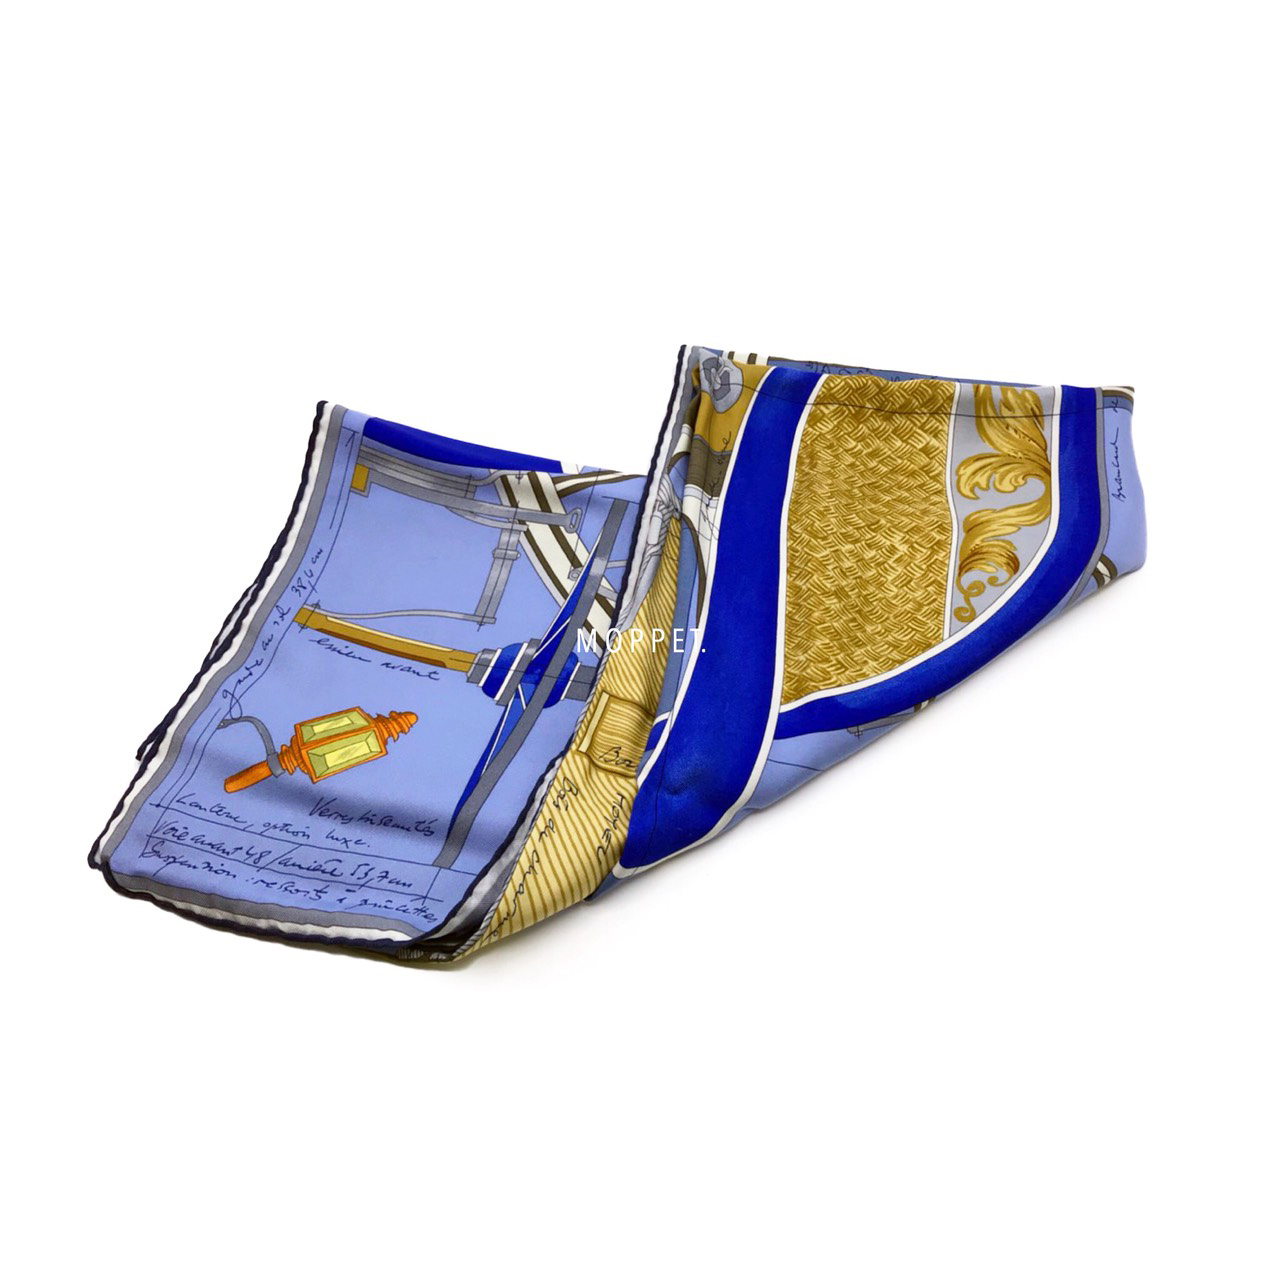 Used Hermes Silk Scarf 90X90'' in Blue Graphic Printed